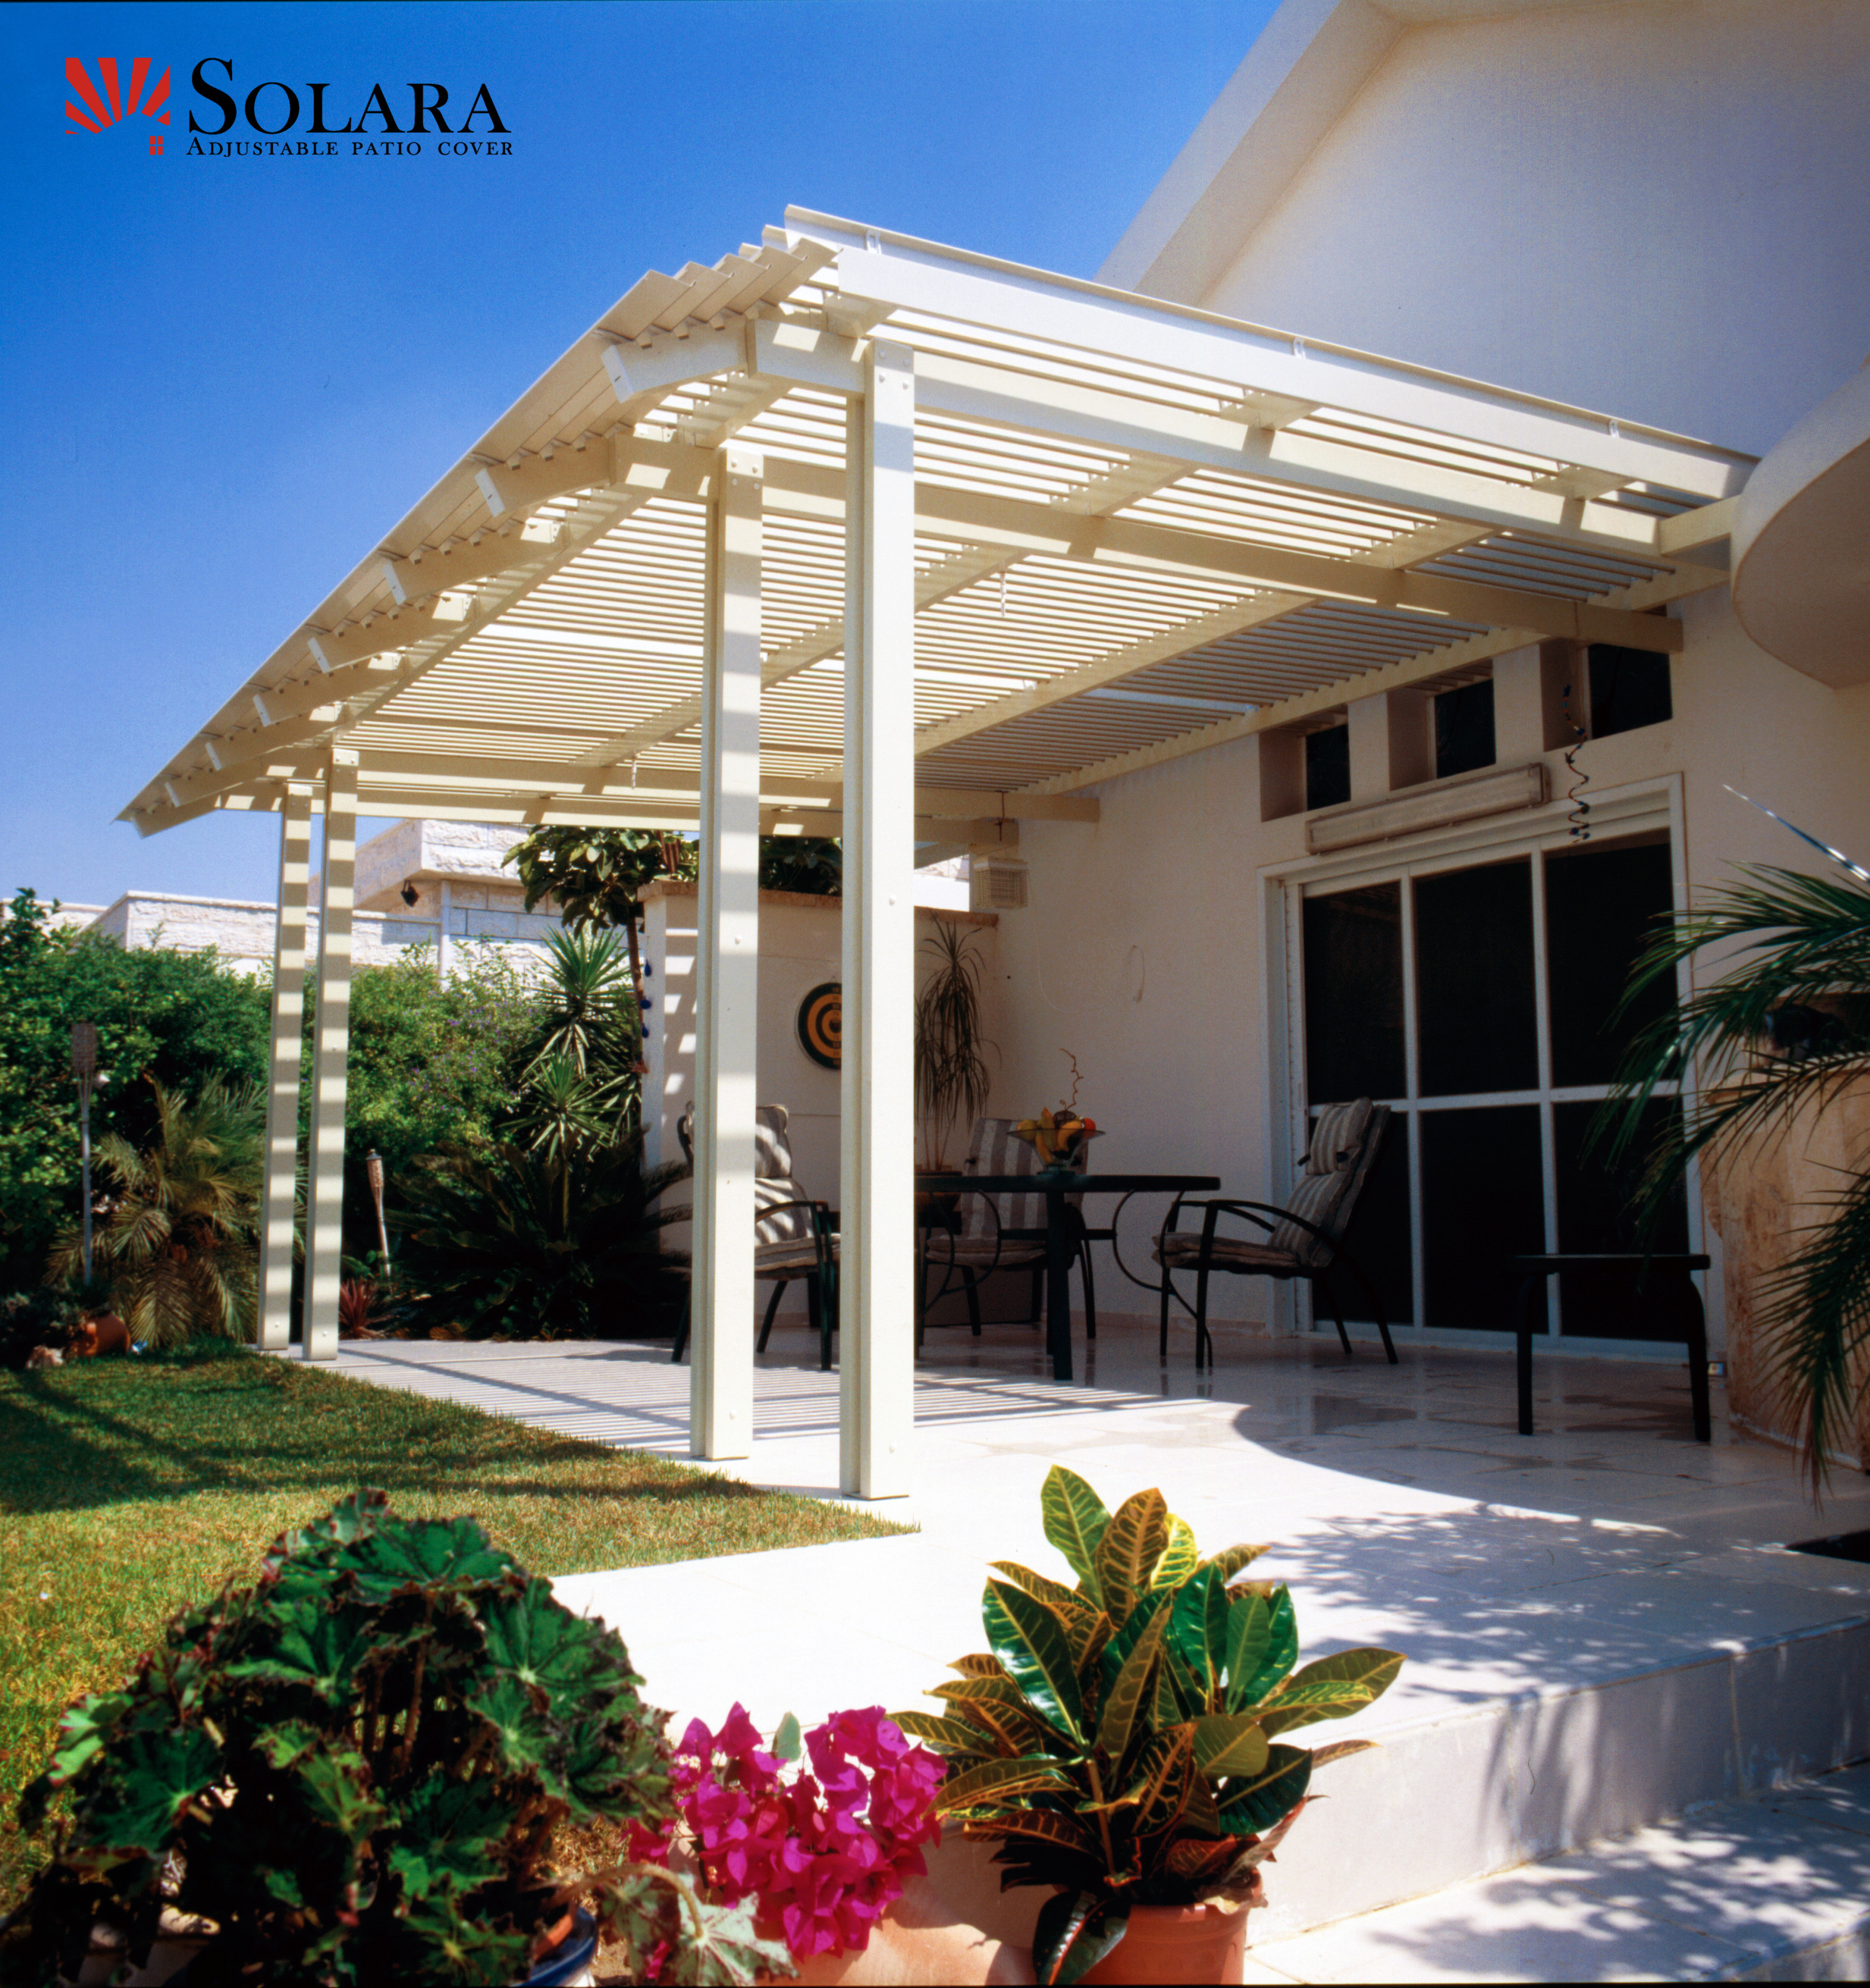 Best ideas about Diy Patio Covers . Save or Pin Solara Patio Cover Gallery Now.